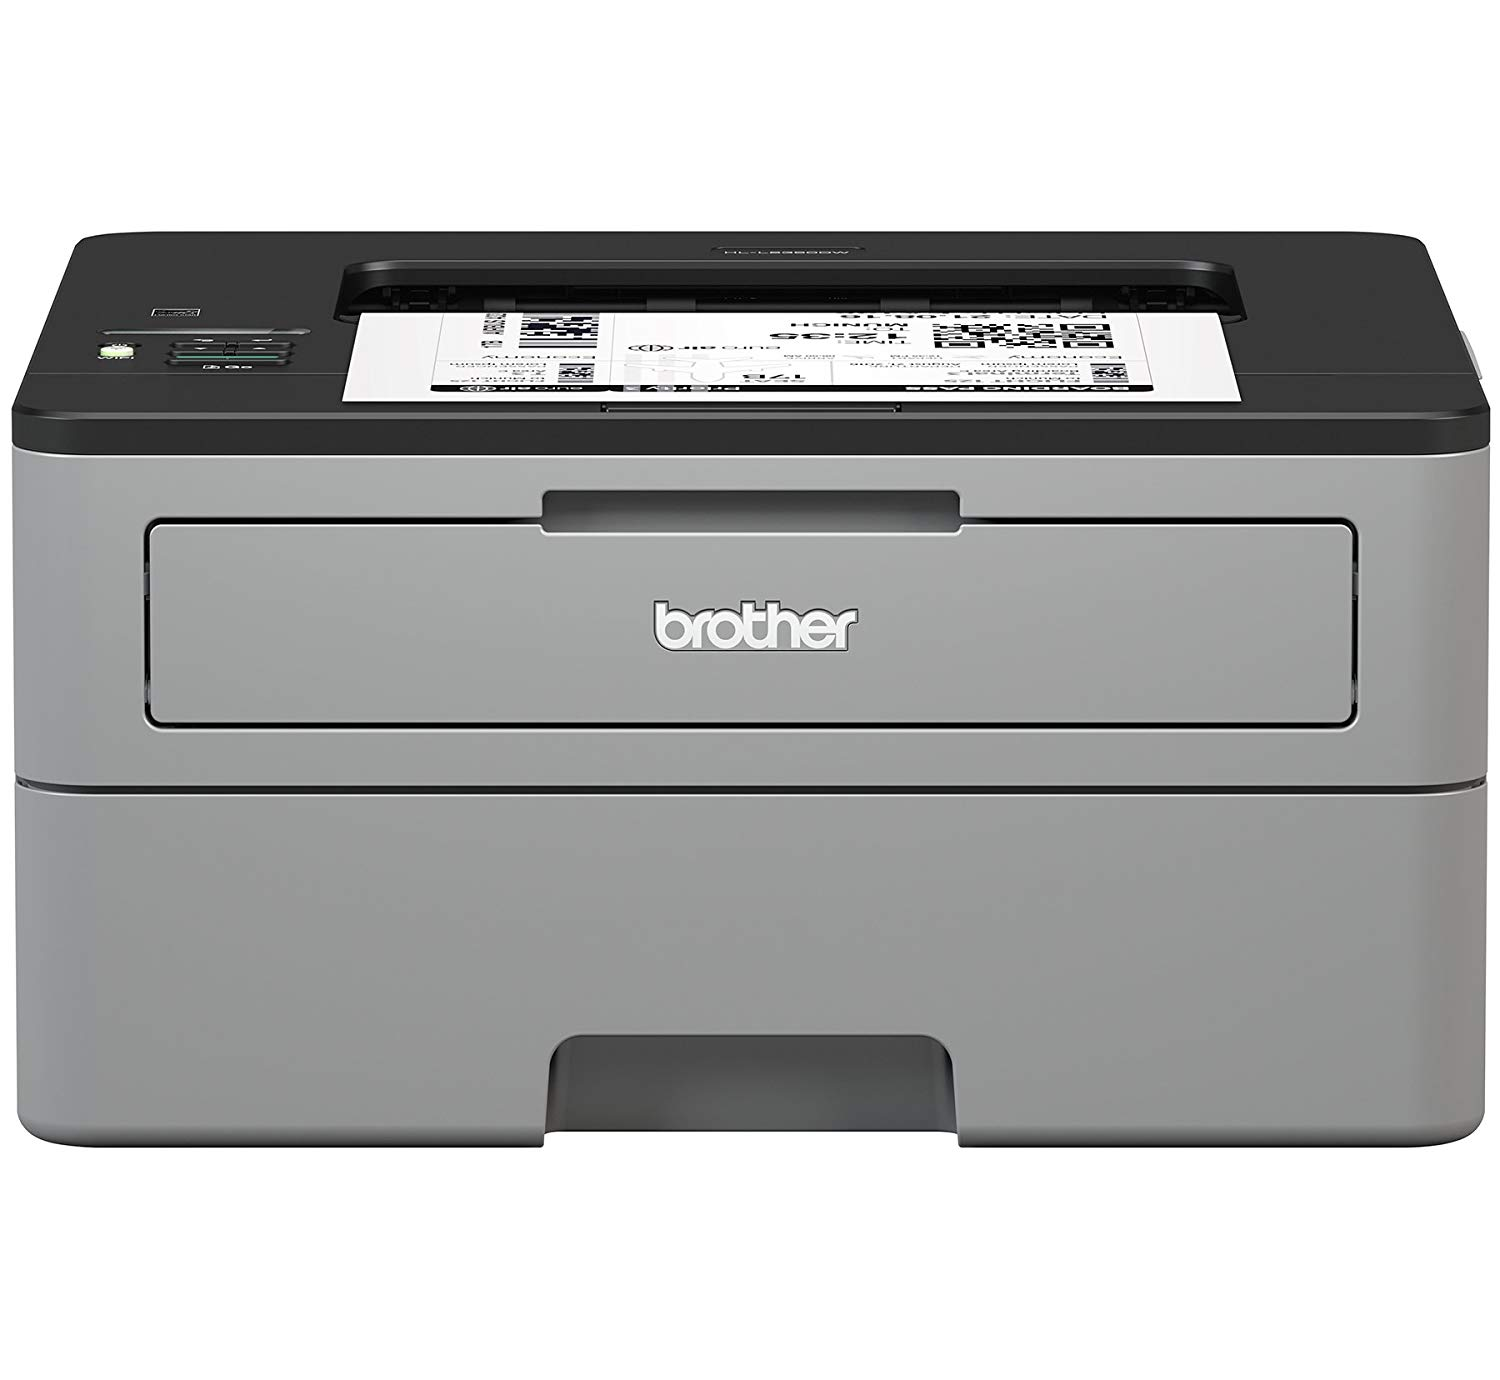 Brother Compact Monochrome Laser Printer HL-L2350DW